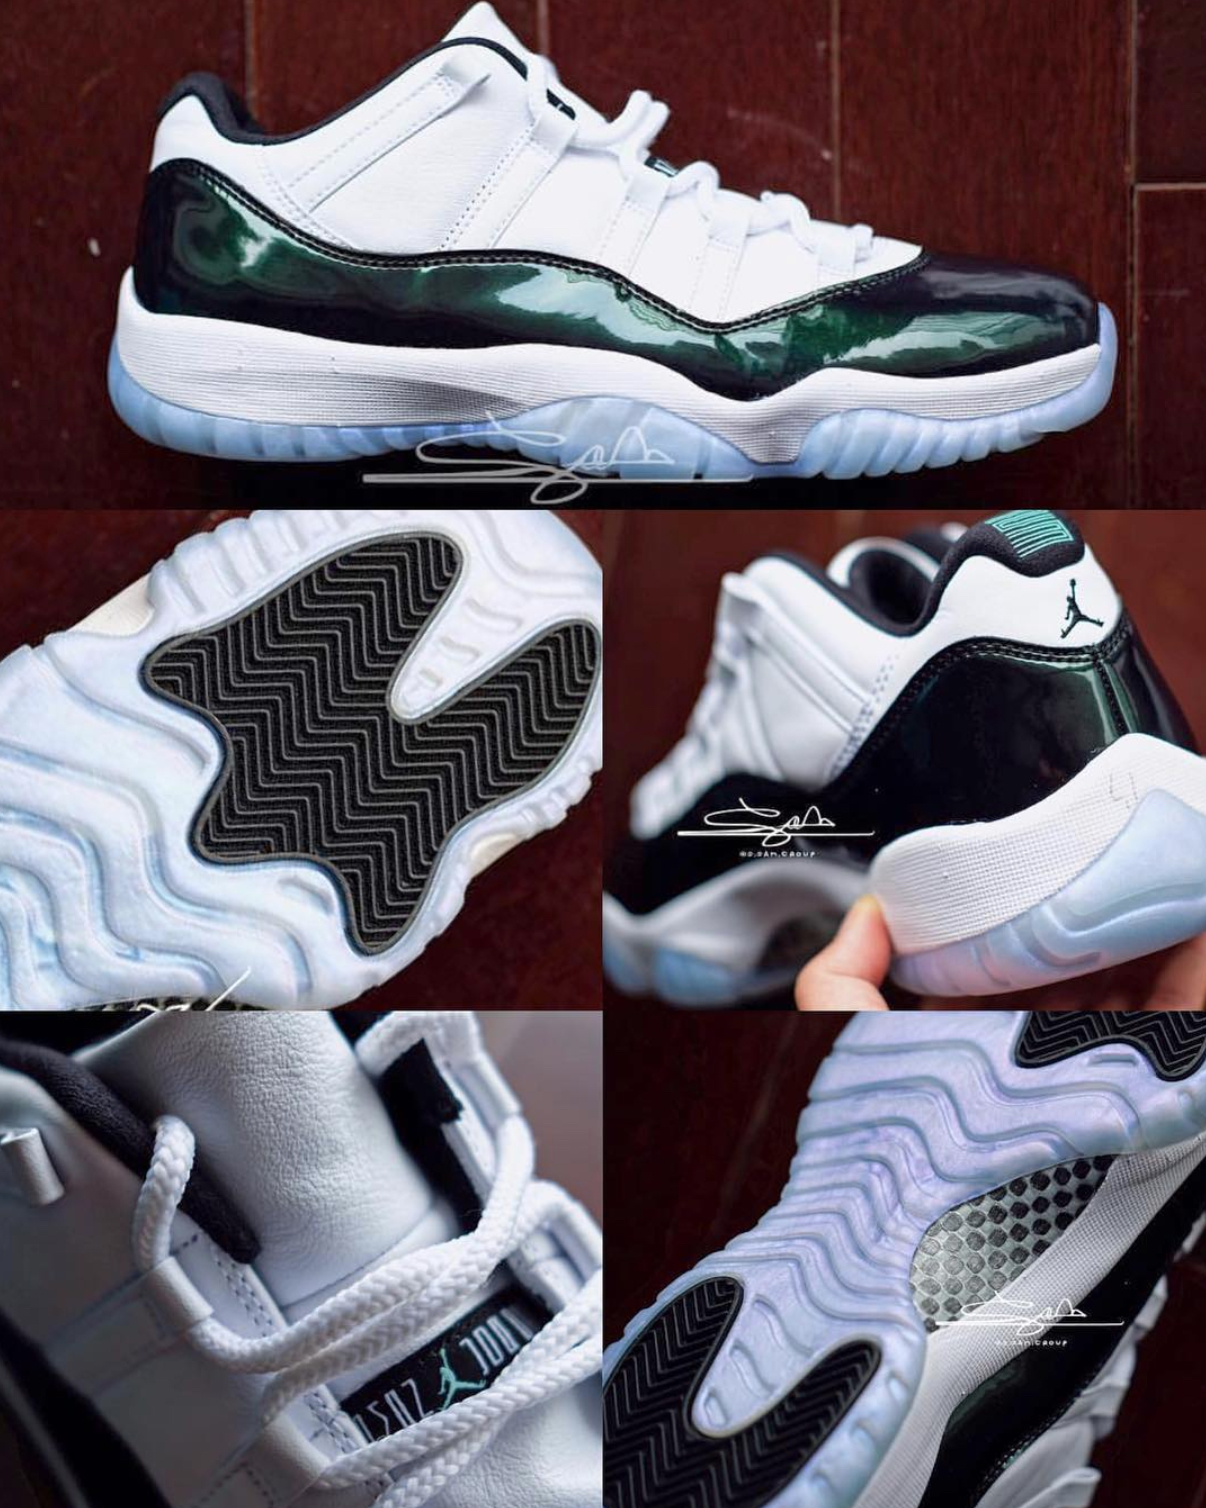 official photos bfb9c 66d31 The Air Jordan 11 Low 'Easter' Will Drop for April Fools ...